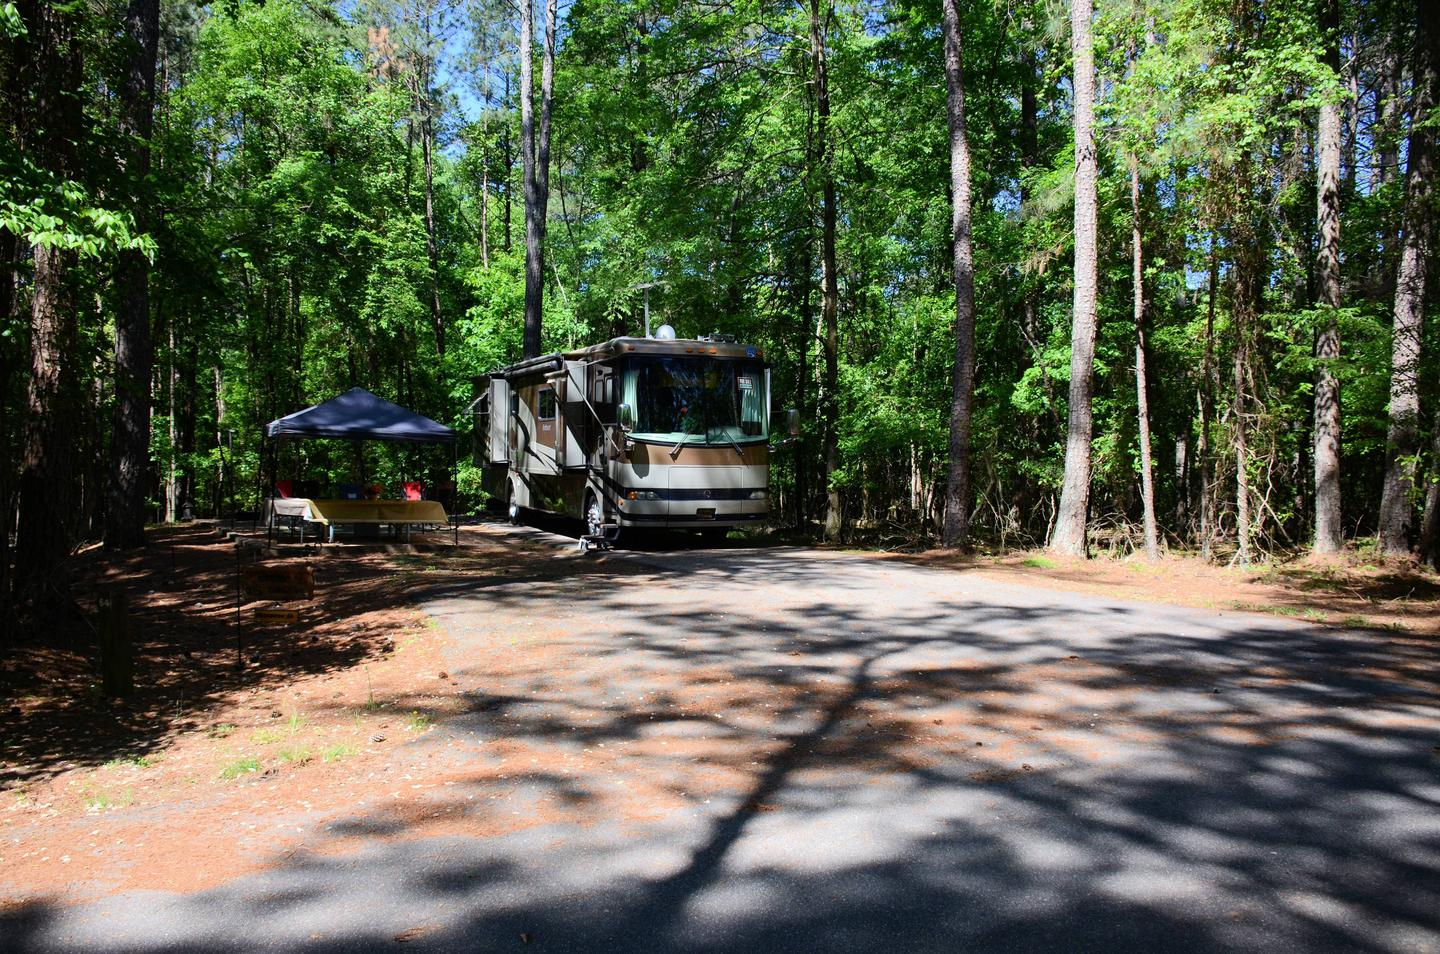 Driveway entrance angle/slope, awning-side clearance.McKinney Campground, campsite 64.